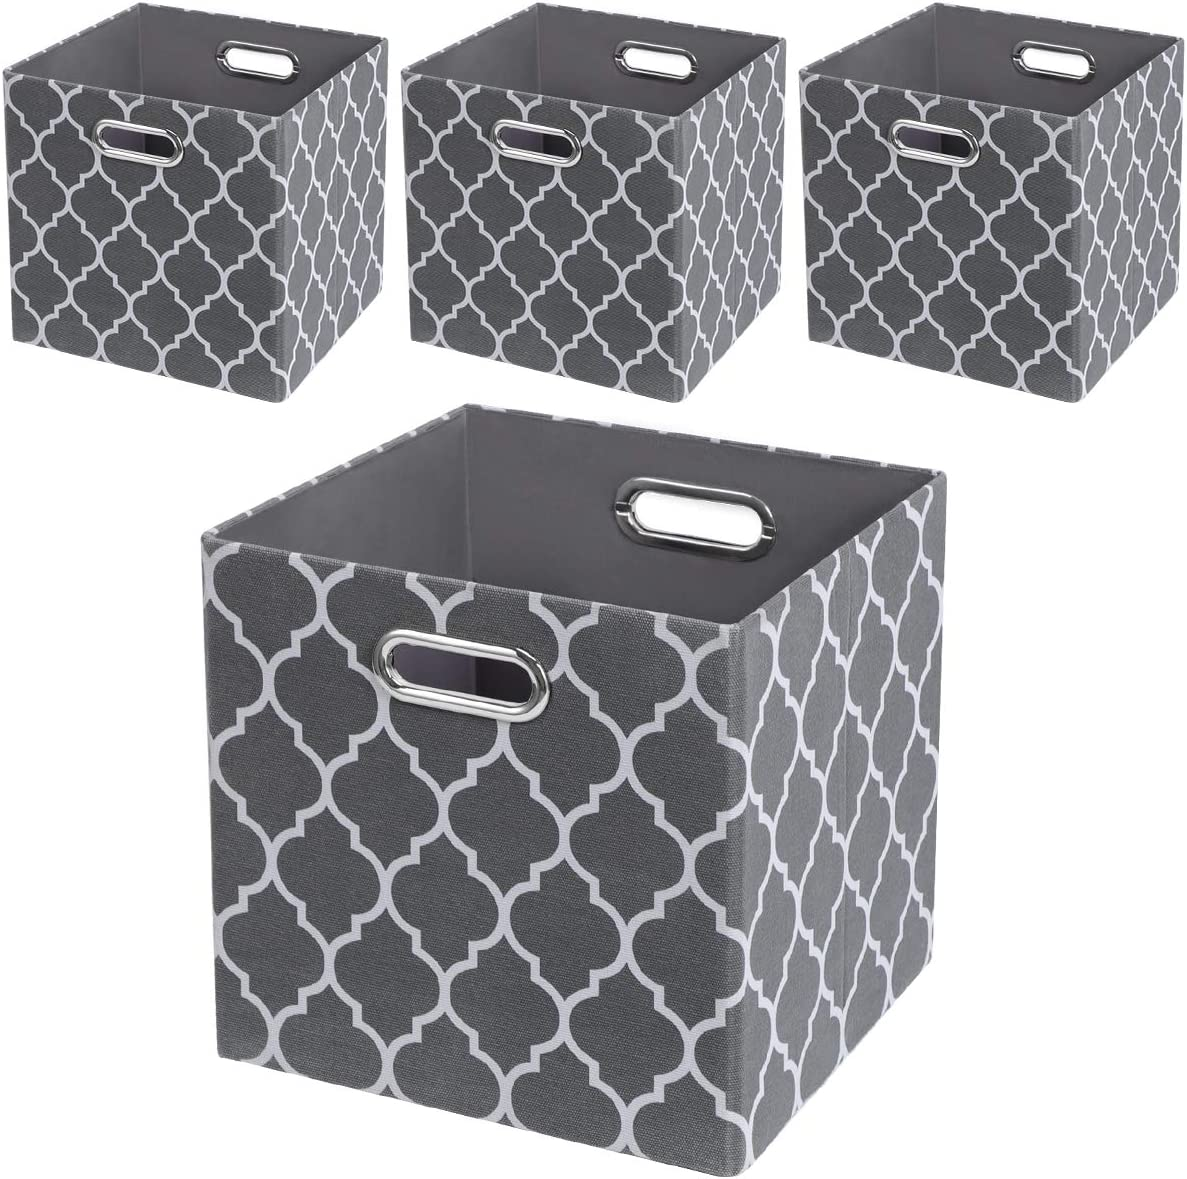 Storage Cubes,11×11 Collapsible Fabric Storage Bins Boxes Baskets - Set of 4, Grey Lantern Patterned